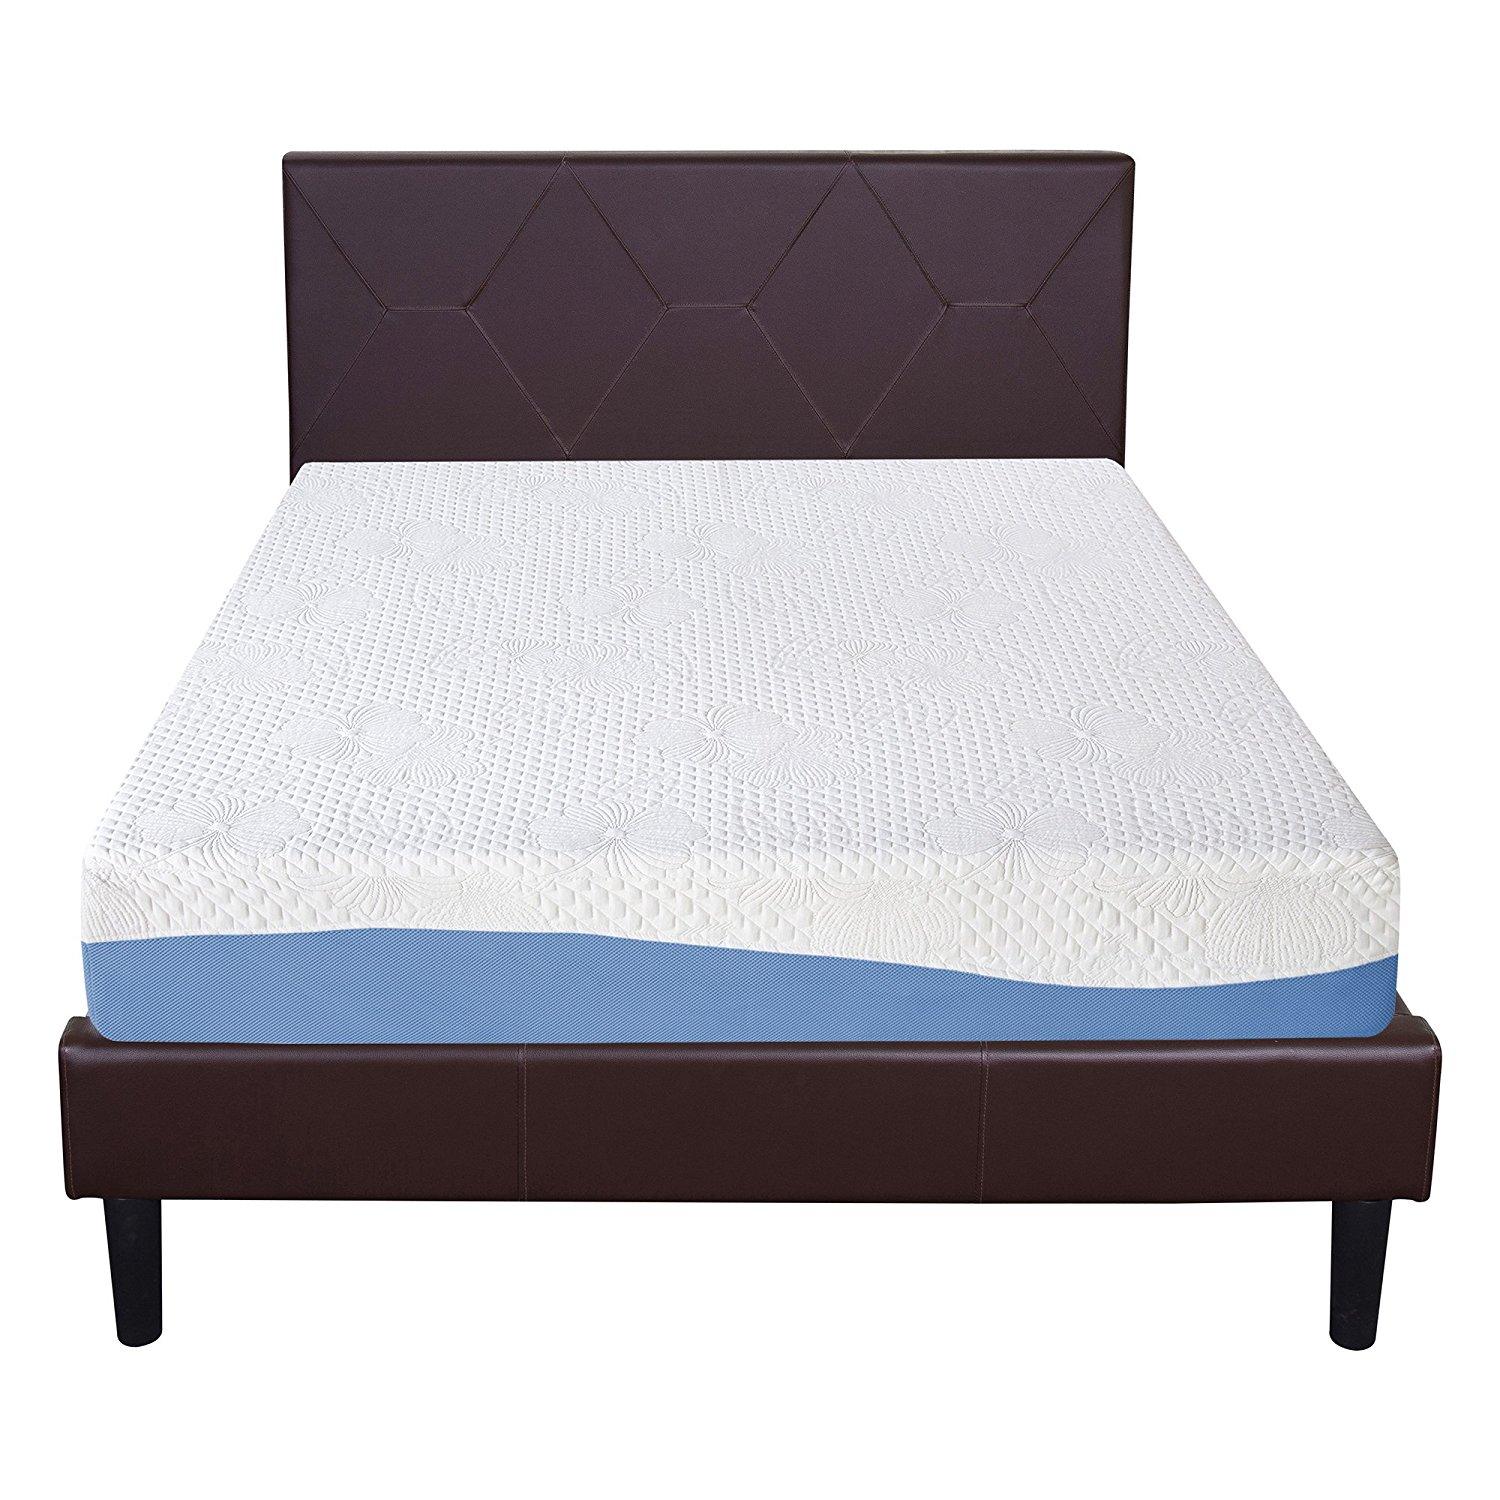 Olee Vs Zinus Mattress Review And Comparison